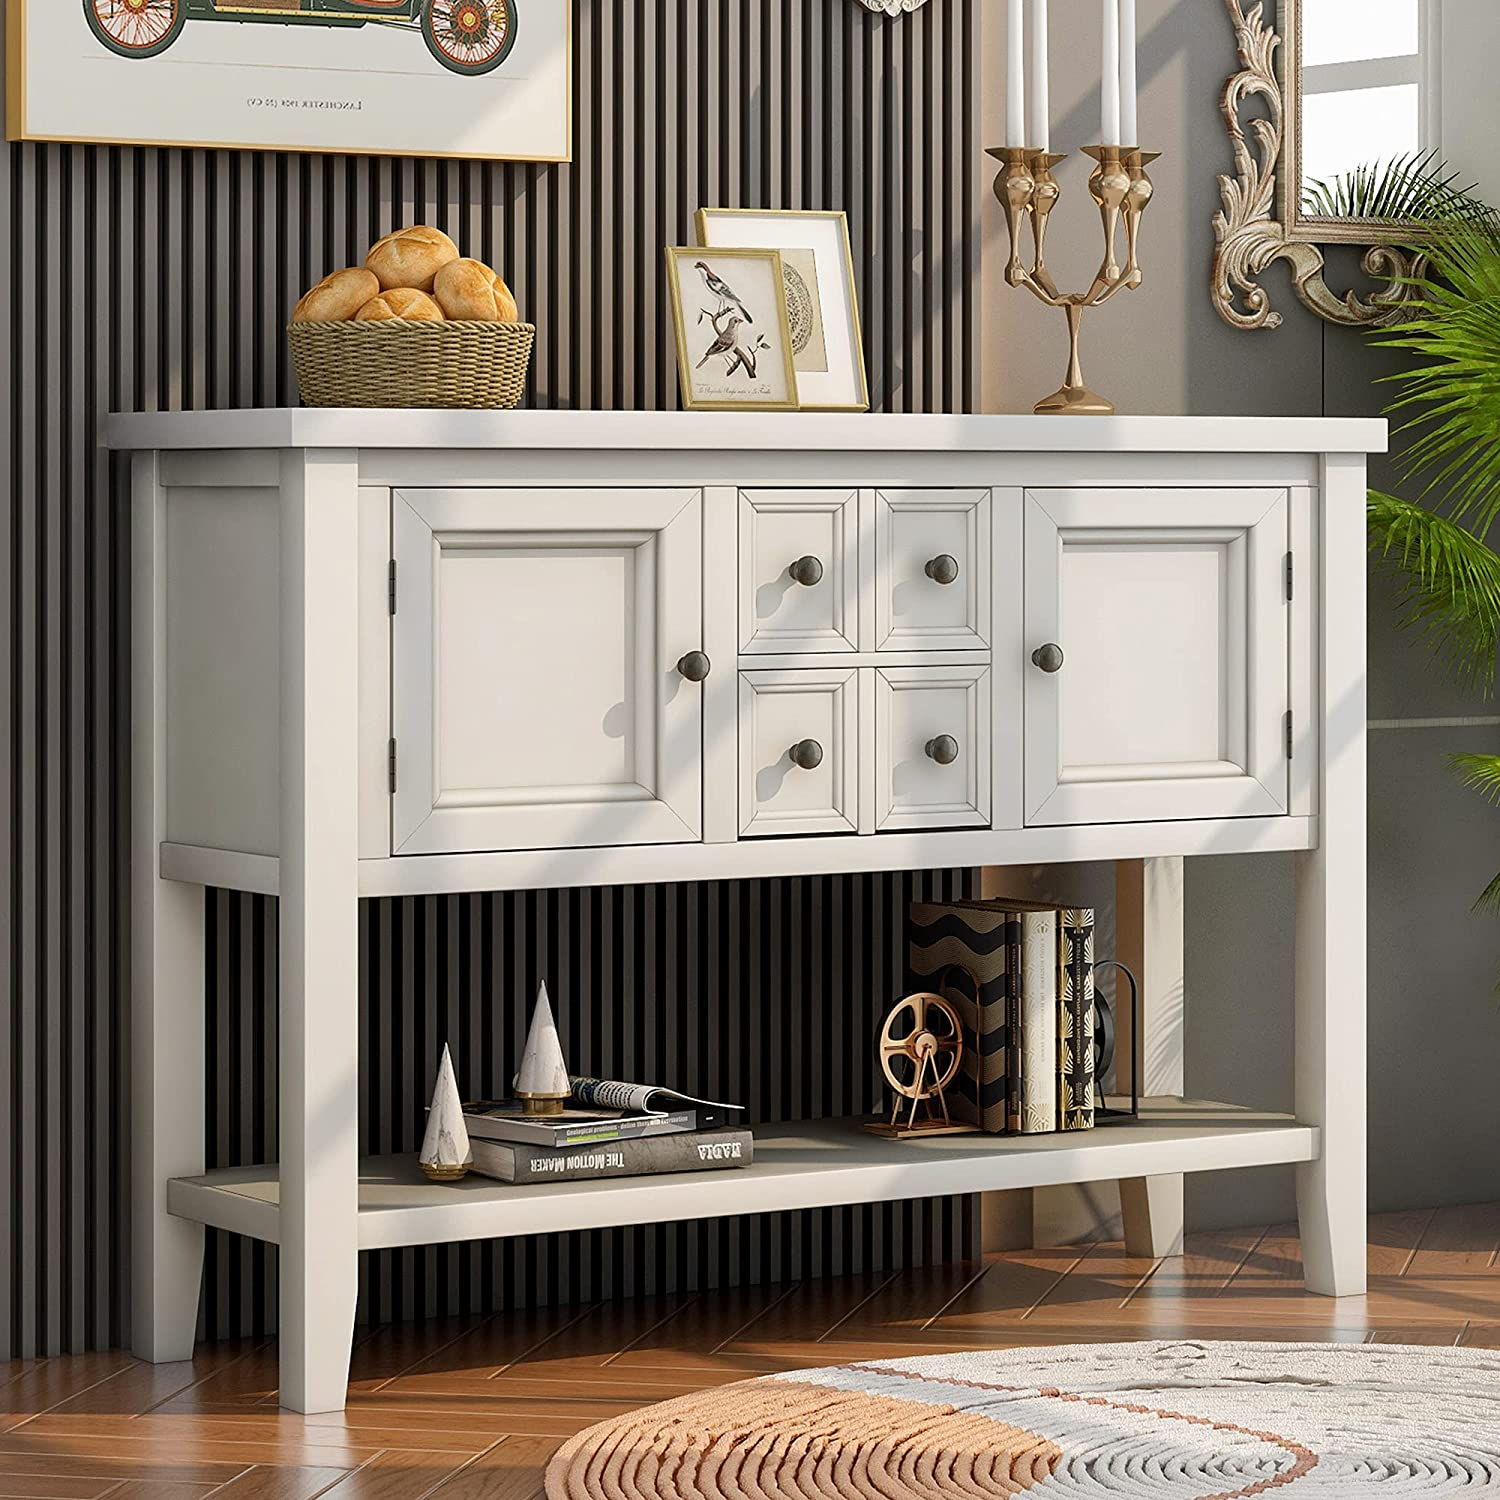 P PURLOVE Cheap SALE Start Console Table Large special price !! Buffet Four Sofa Sideboard with St